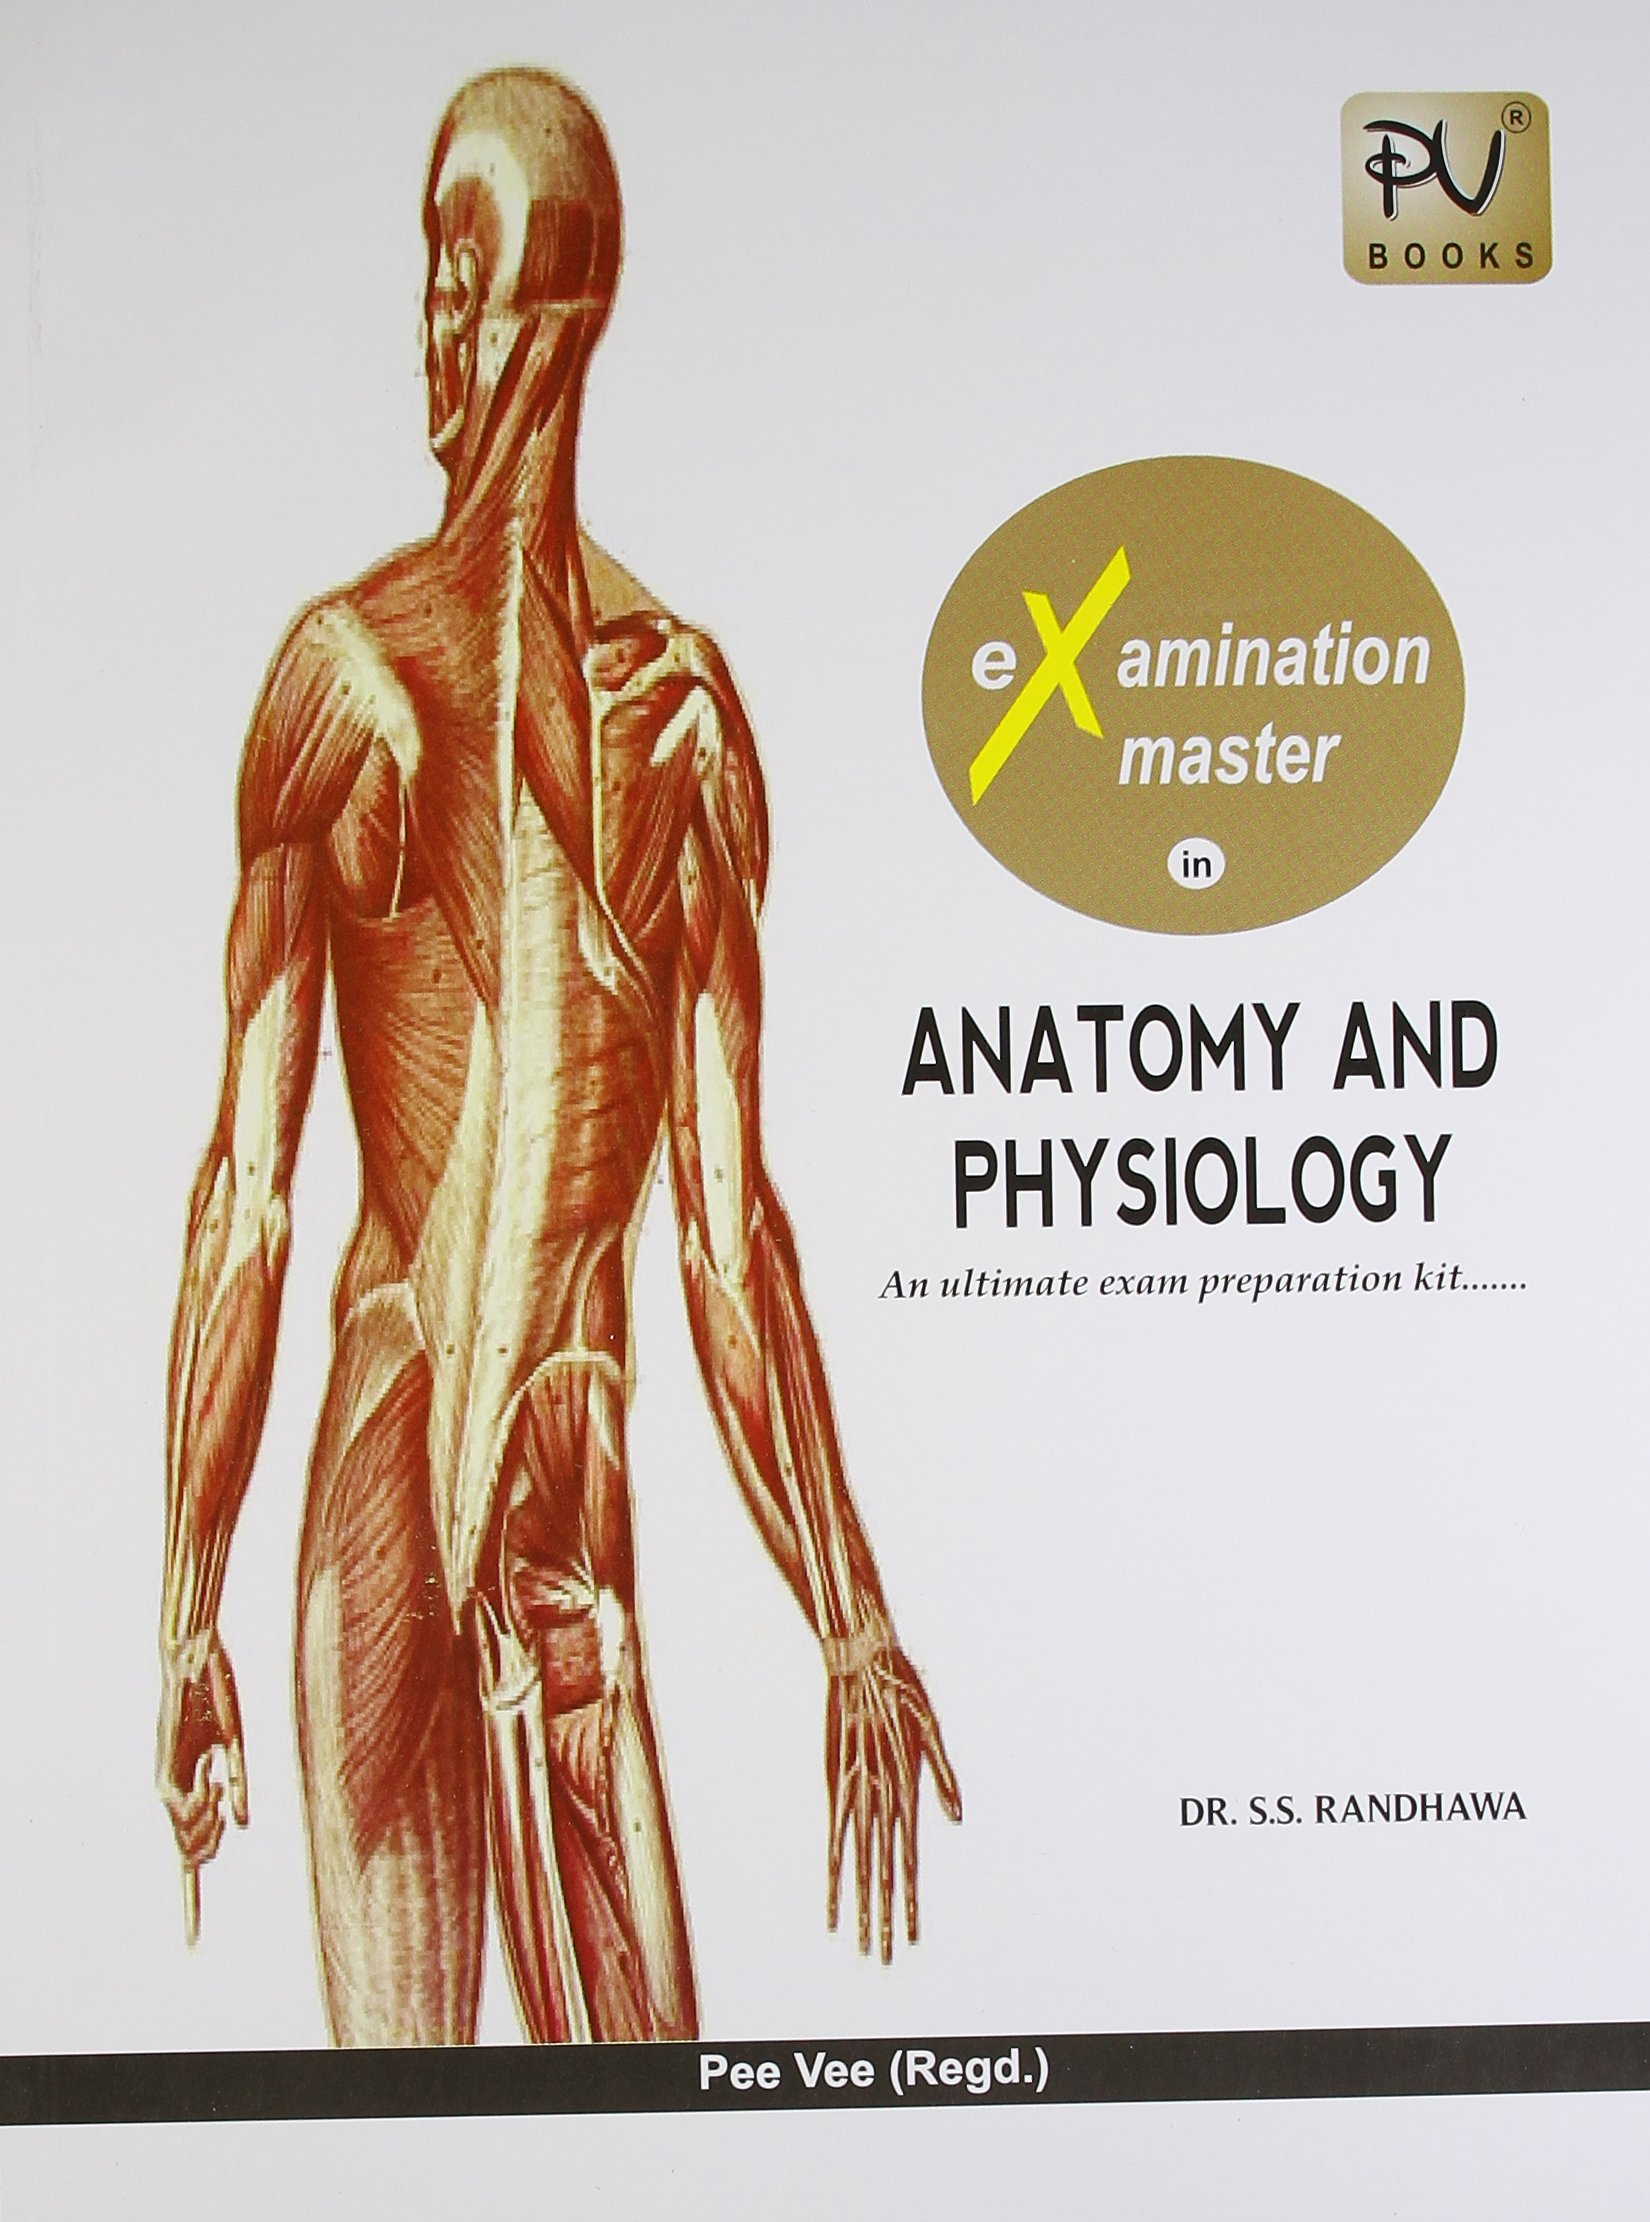 Amazon.in: Buy Examination Master in Anatomy and Physiology Book ...